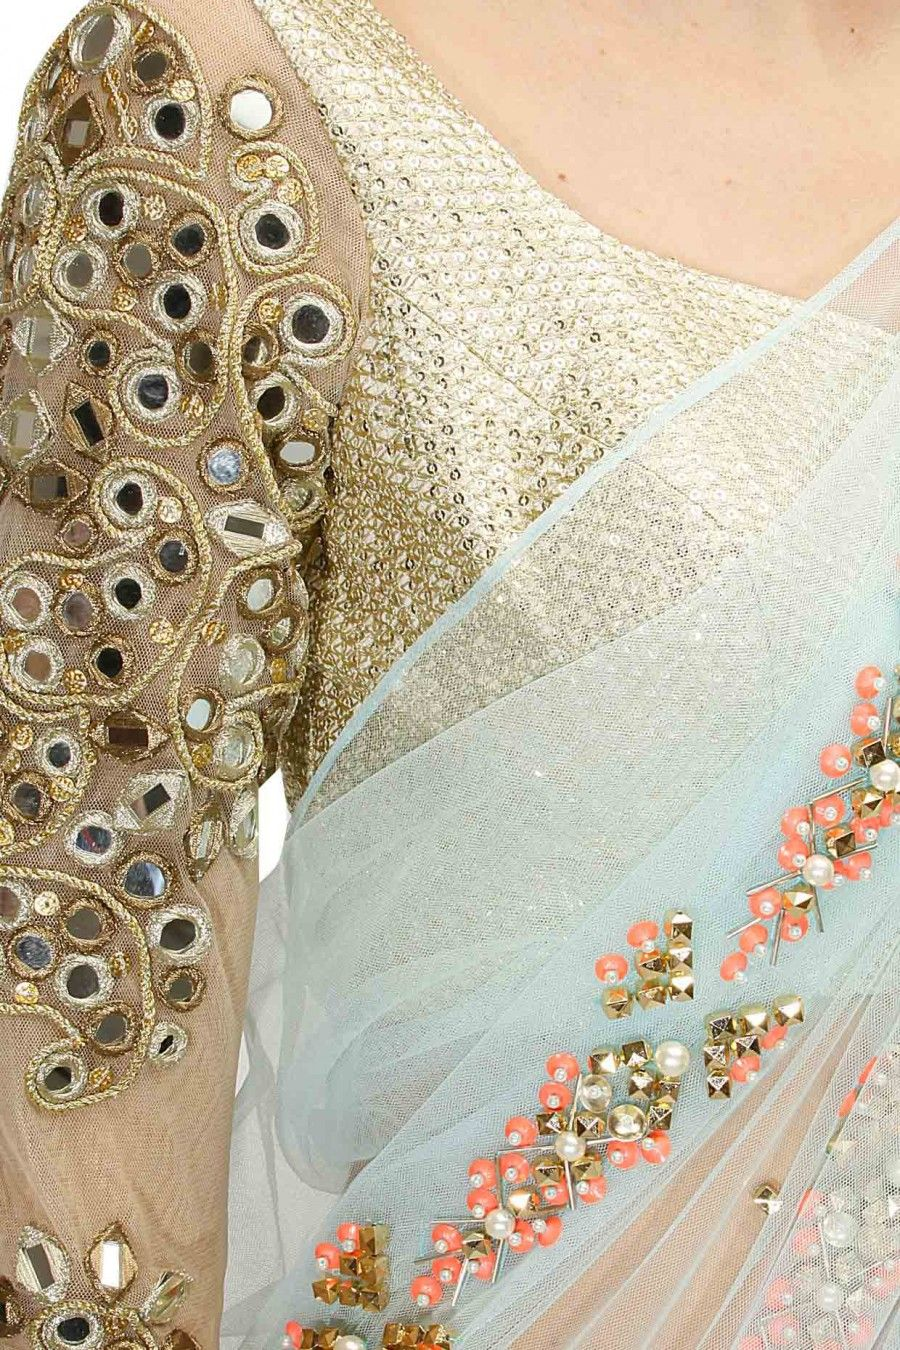 Lehenga blouse design in golden color and mirror work - Powder Blue 3d Flowers Pre Stitched Sari With Gold Embroidered Blouse Available Only At Pernia S Pop Mirror Work